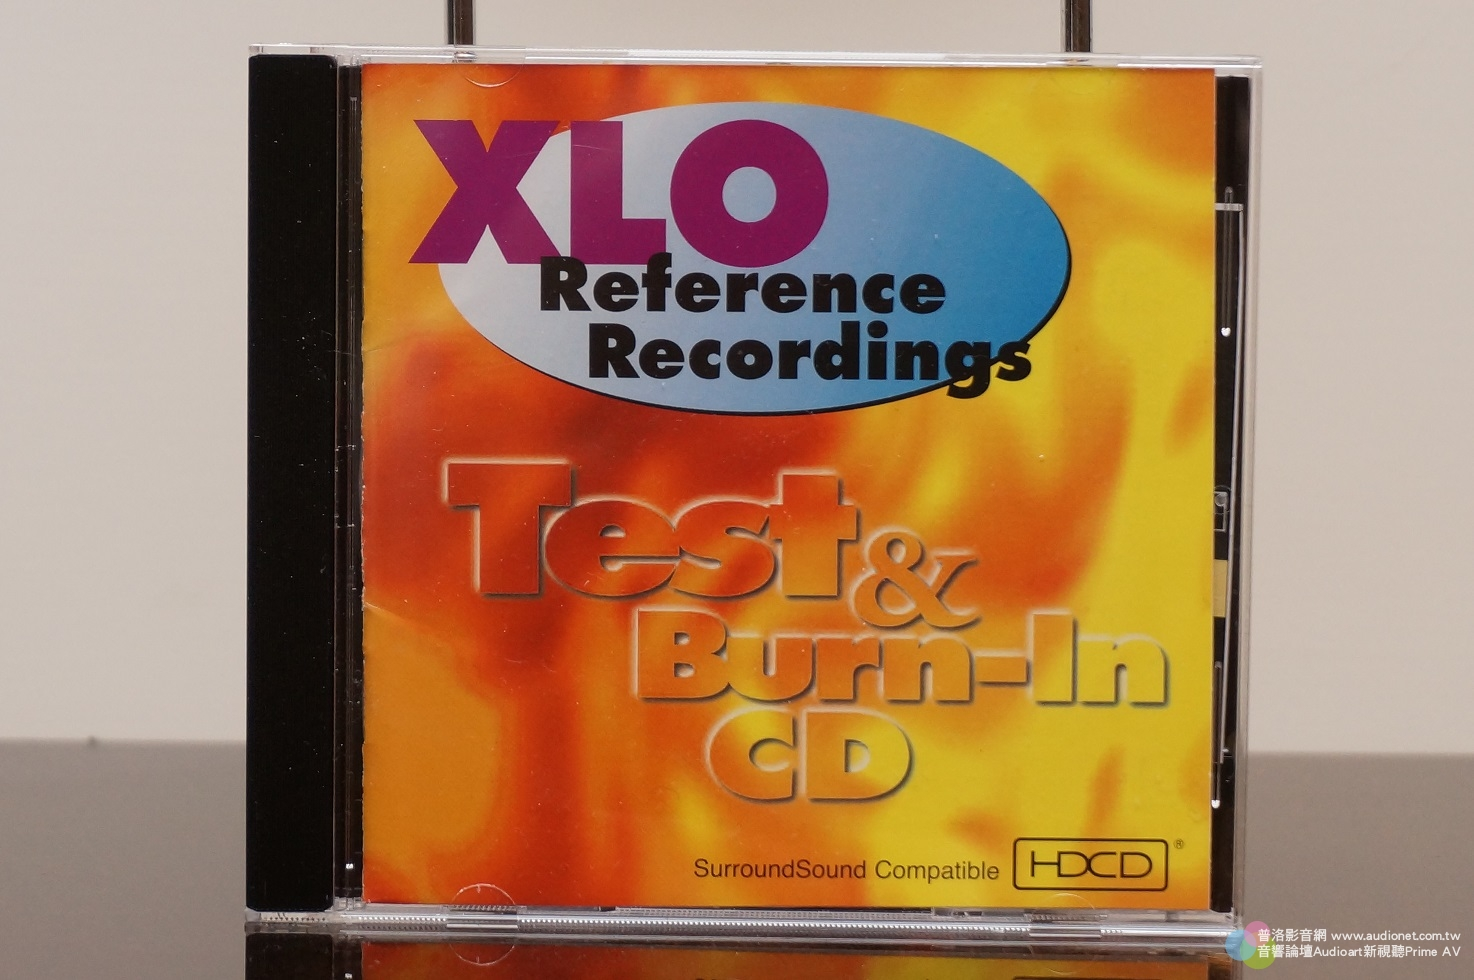 音響迷應該人手一張,XLO Reference Recordings Test & Burn-In CD